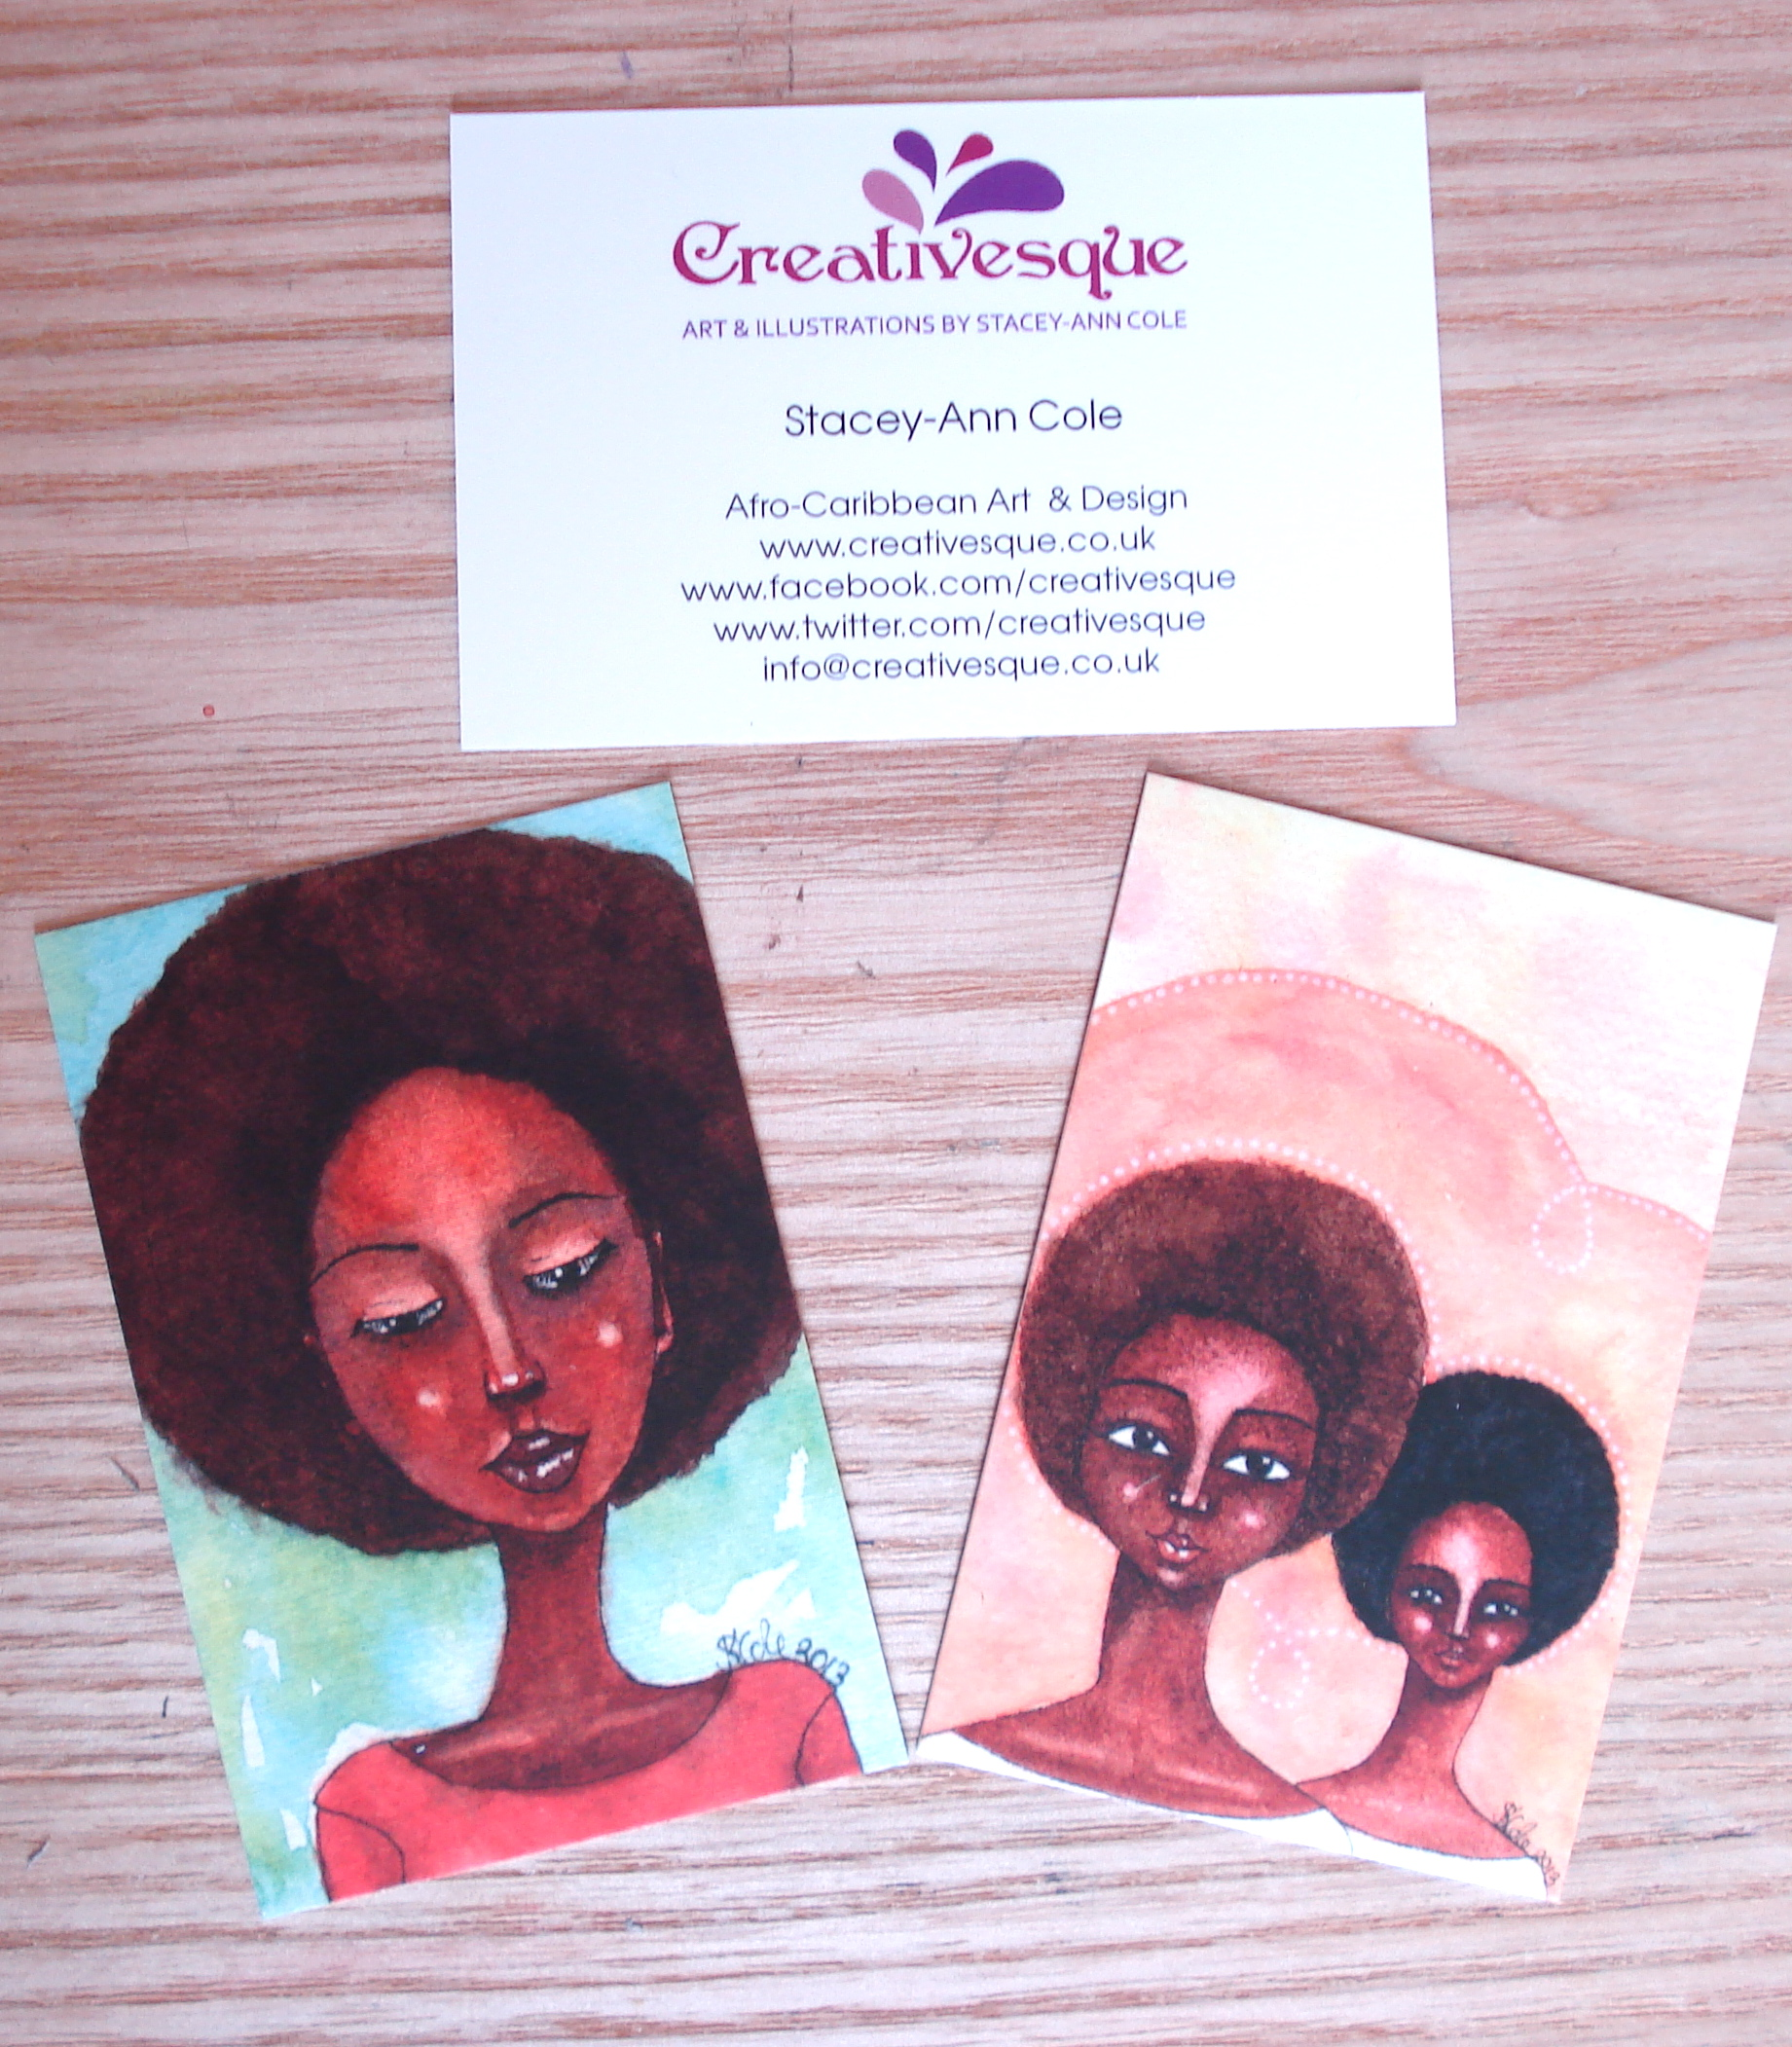 New Business Cards © Stacey-Ann Cole 2013